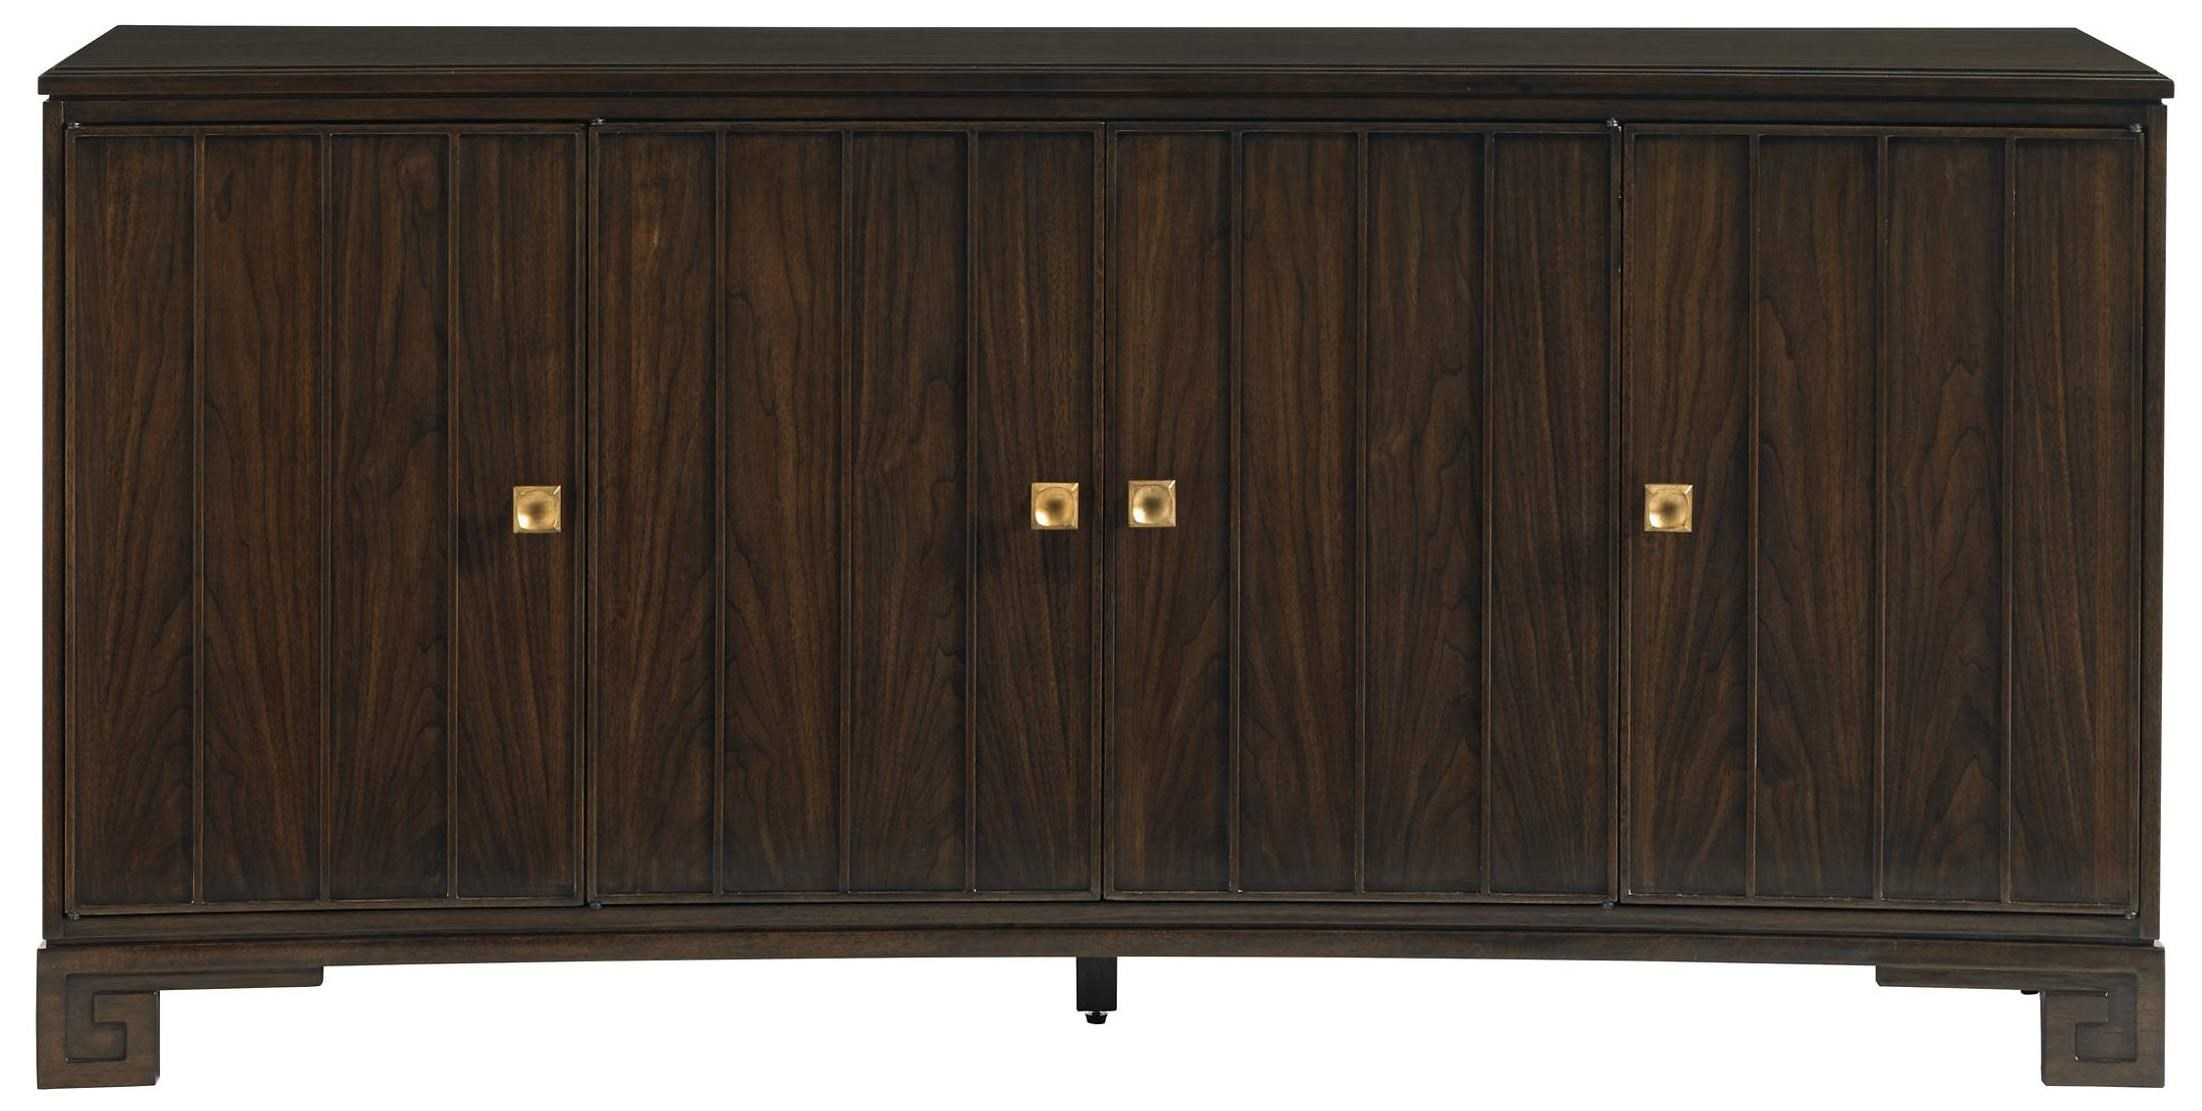 Great Stanley Furniture Crestaire Monterey Buffet With Concave Front   Baeru0027s  Furniture   Buffets